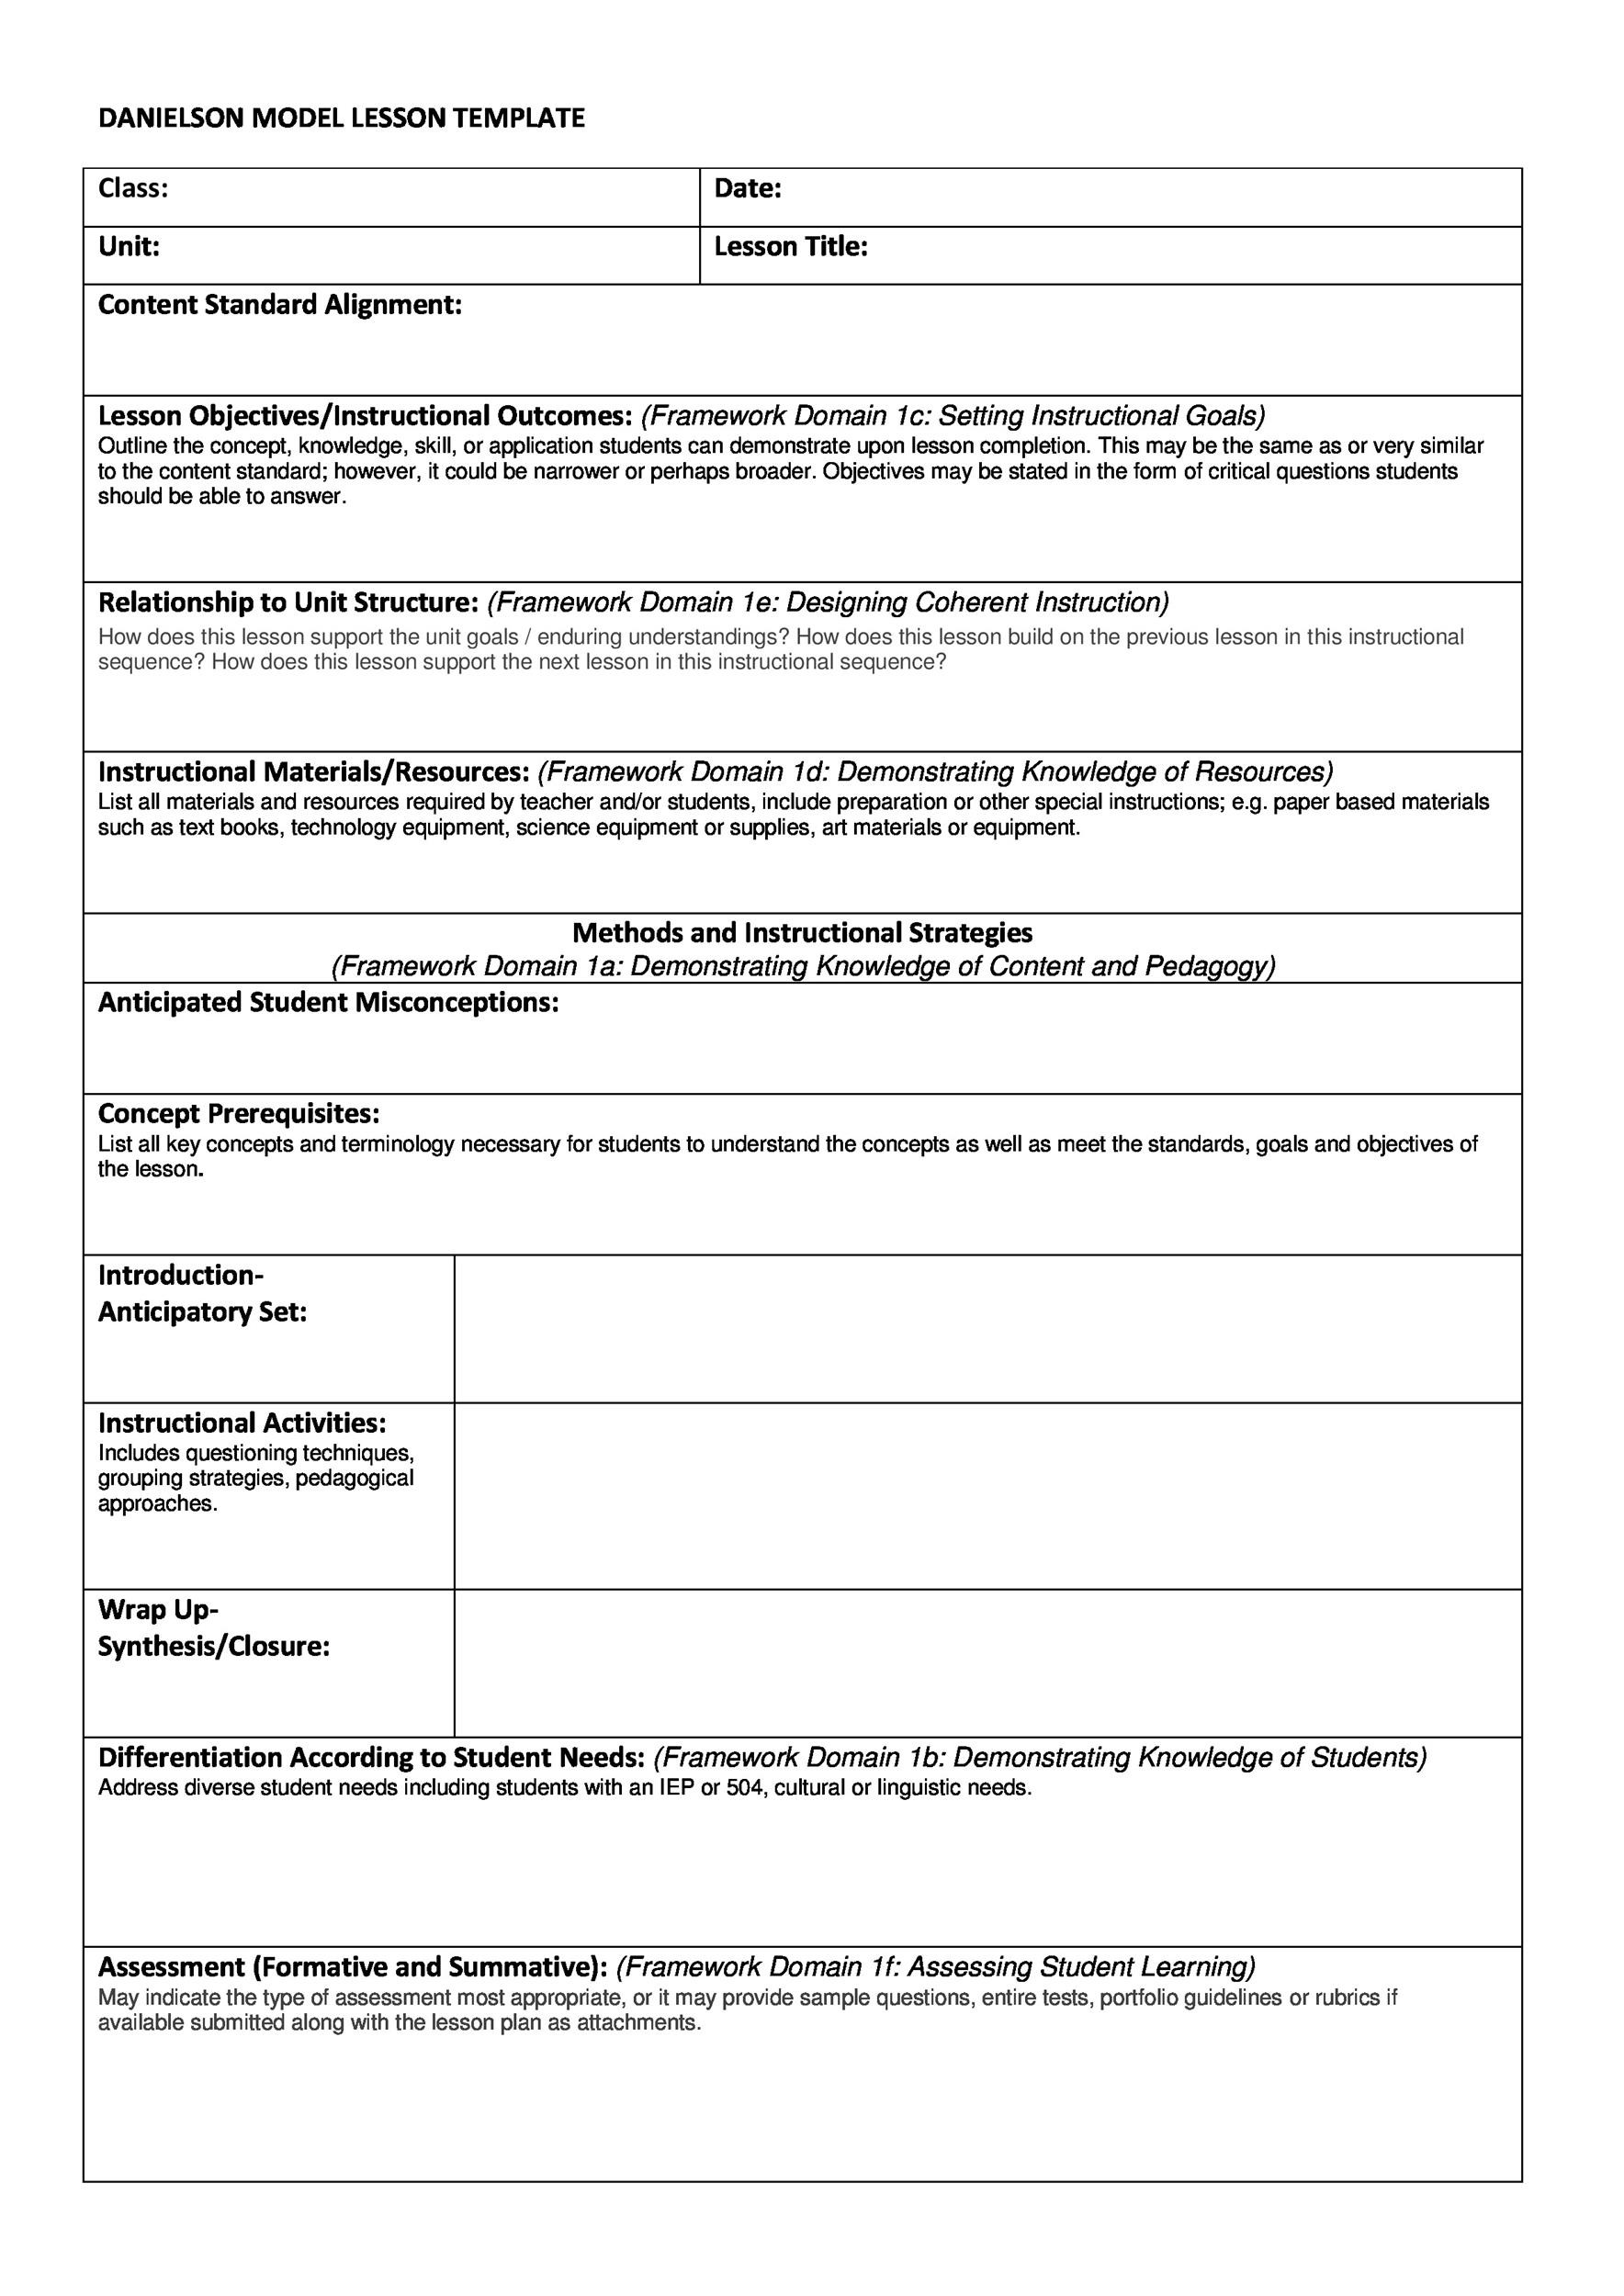 FREE Lesson Plan Templates Common Core Preschool Weekly - Free lesson plans templates